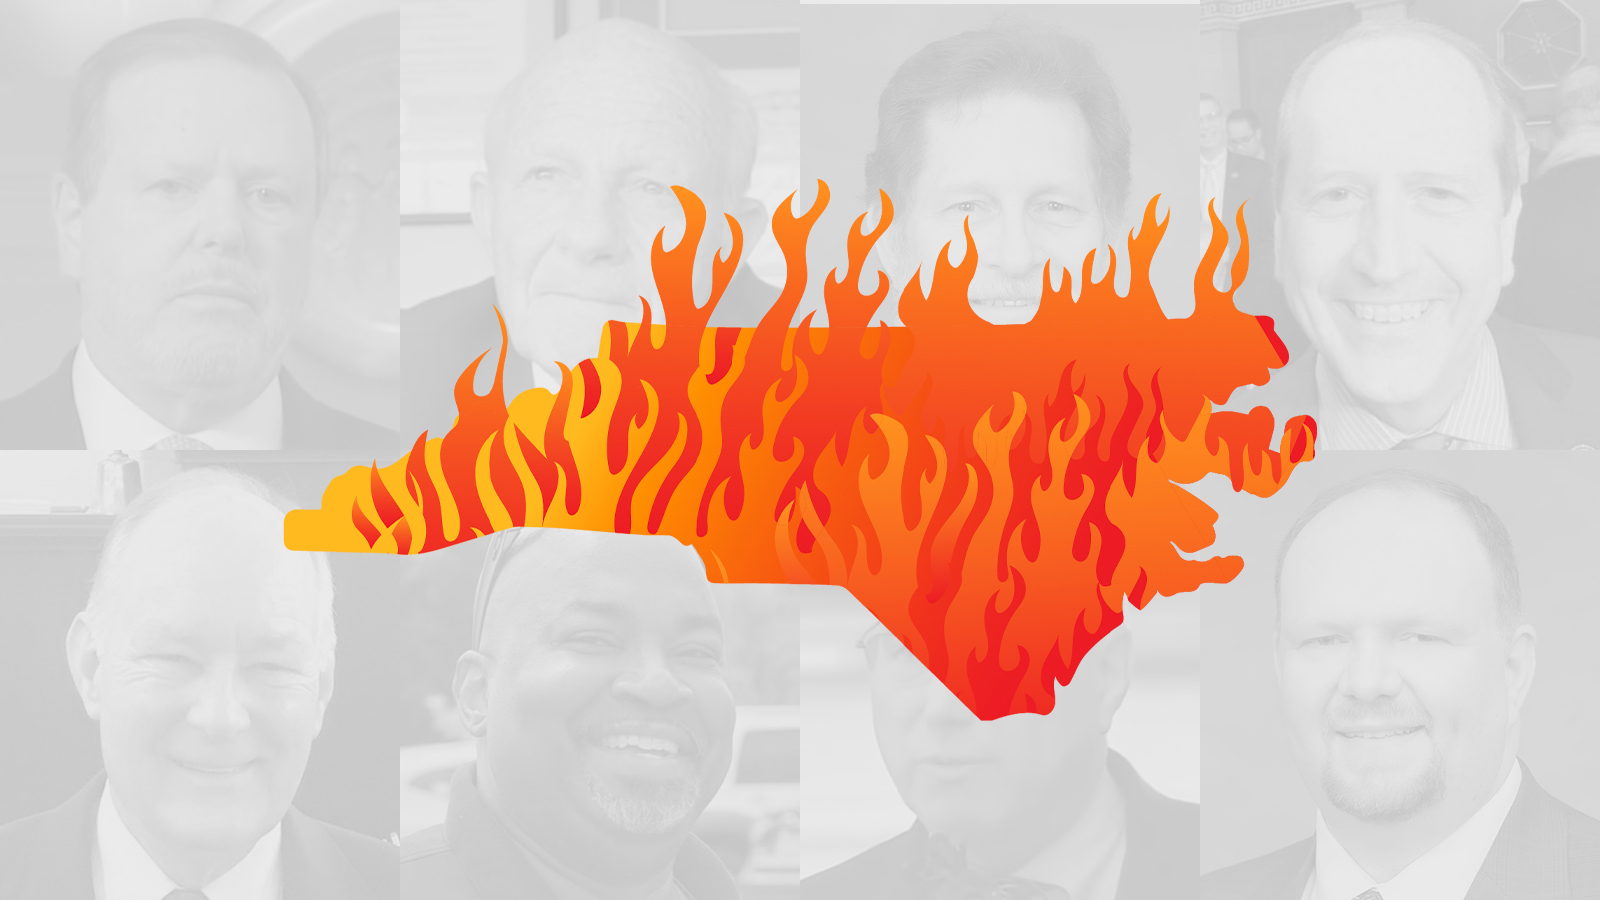 Illustrated art of the state of North Carolina on fire, for North Carolina's worst politicians